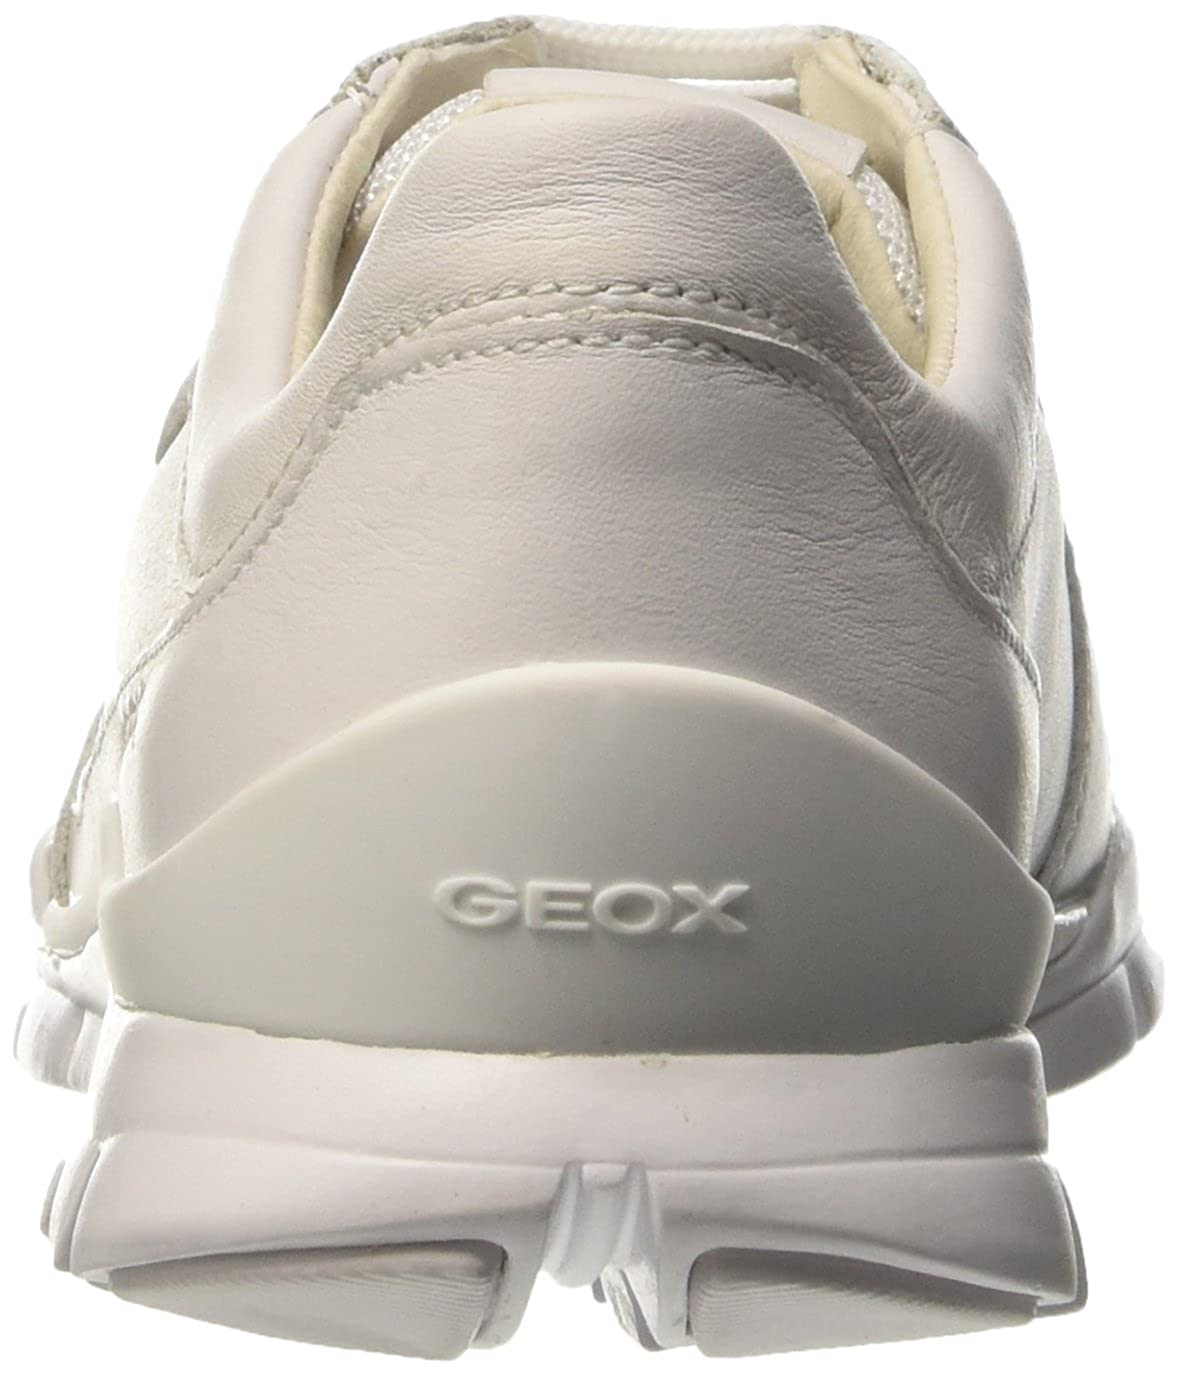 Amazon.com | Geox Womens D Sukie a Low-Top Sneakers, White (IVORYC1008) | Fashion Sneakers